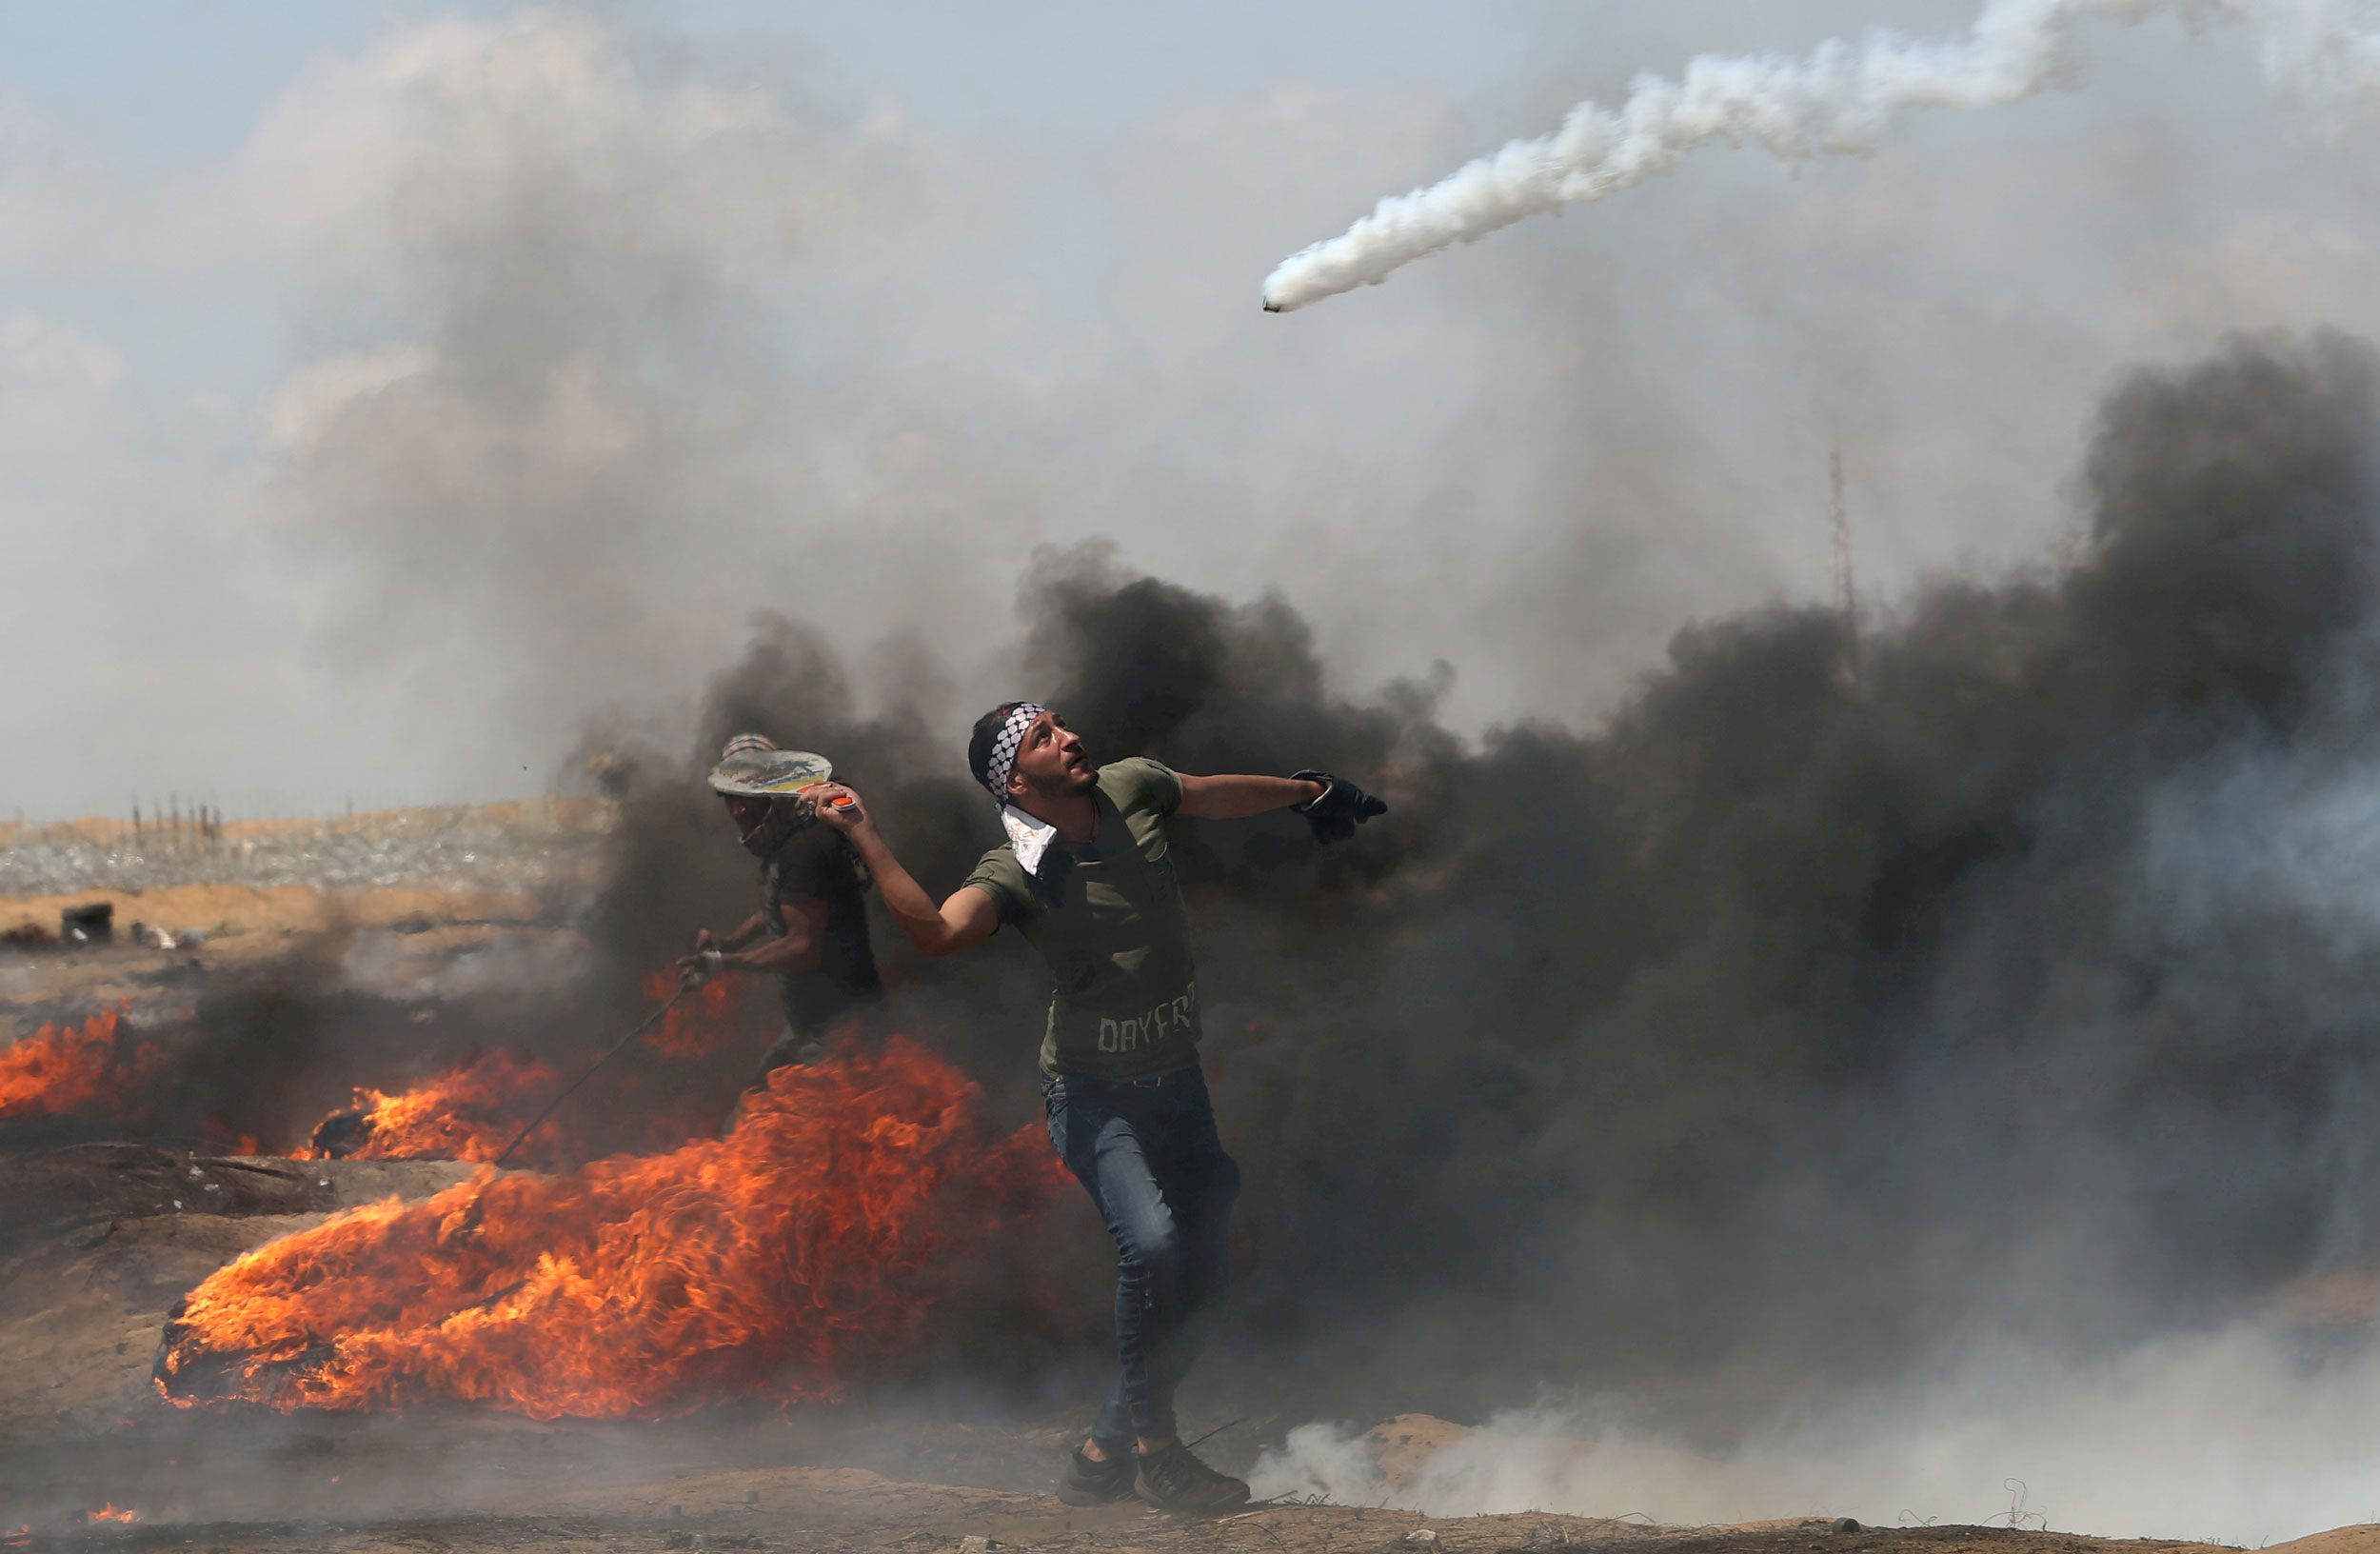 A man uses a racket to hit at a tear gas canister as it is launched through the air.